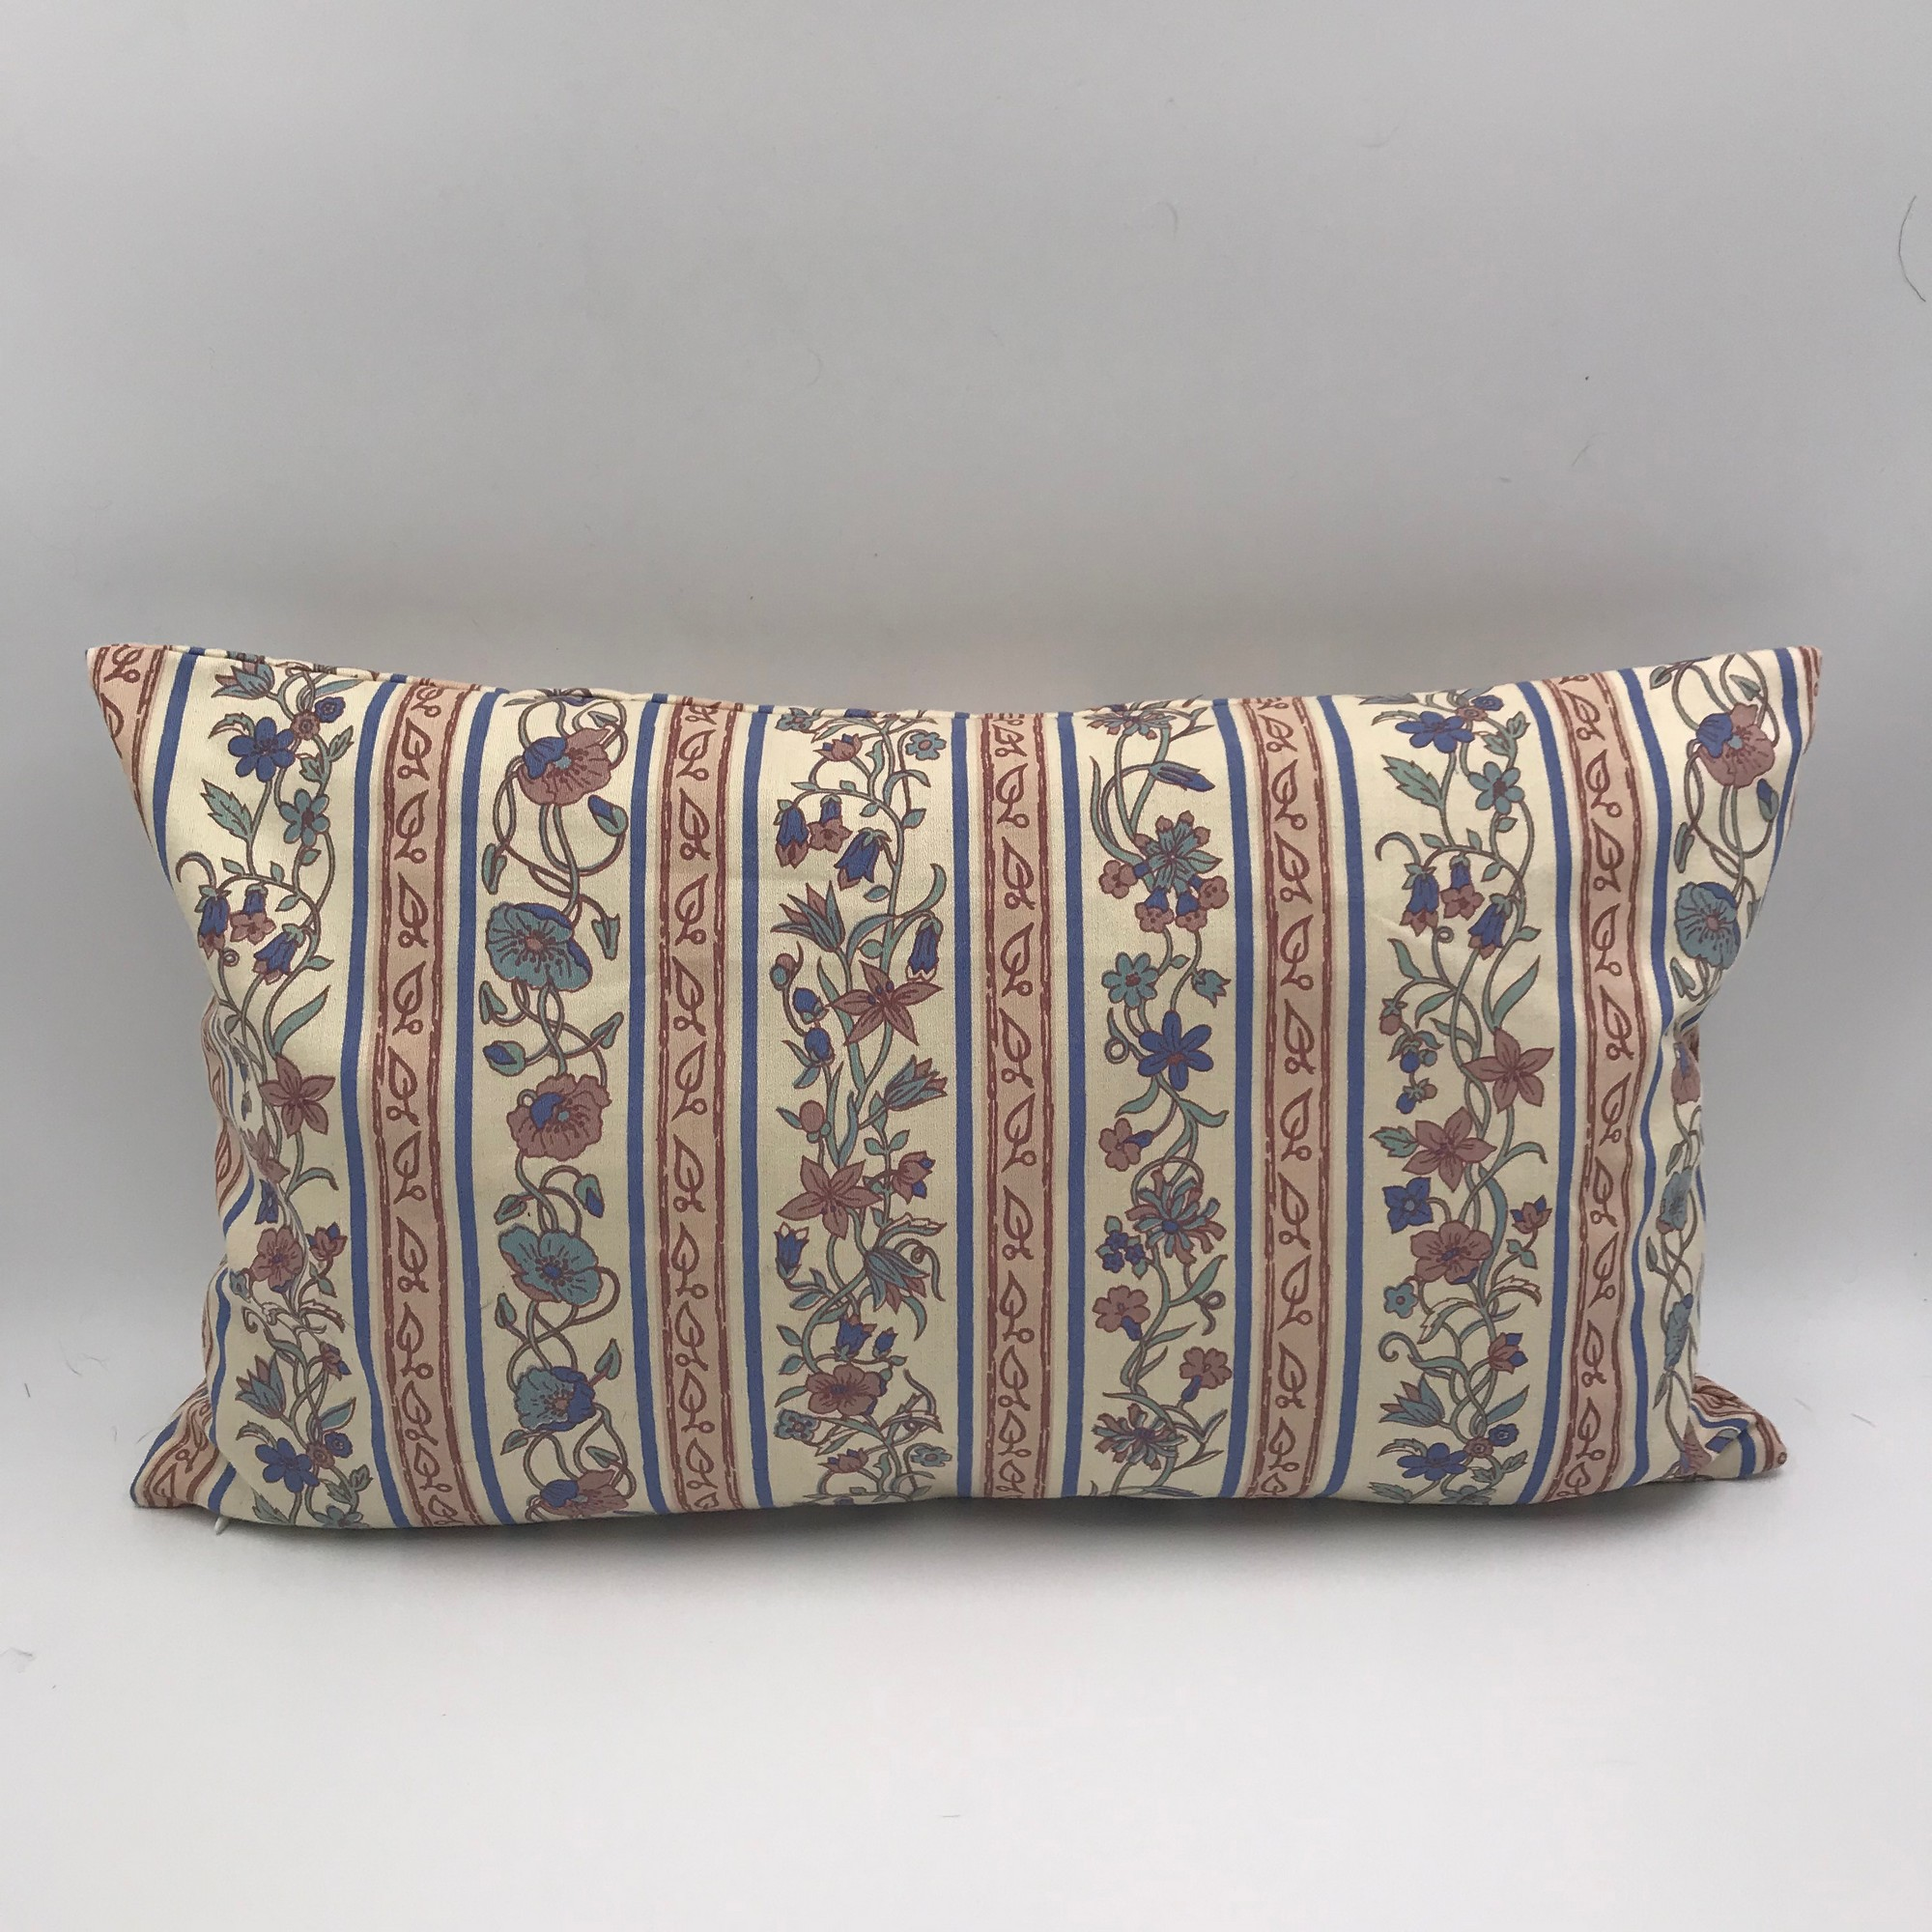 Buy Handmade pillow vintage style, Сotton pillow style 60s, Сraftsman's pillow, Hand made decorative pillow